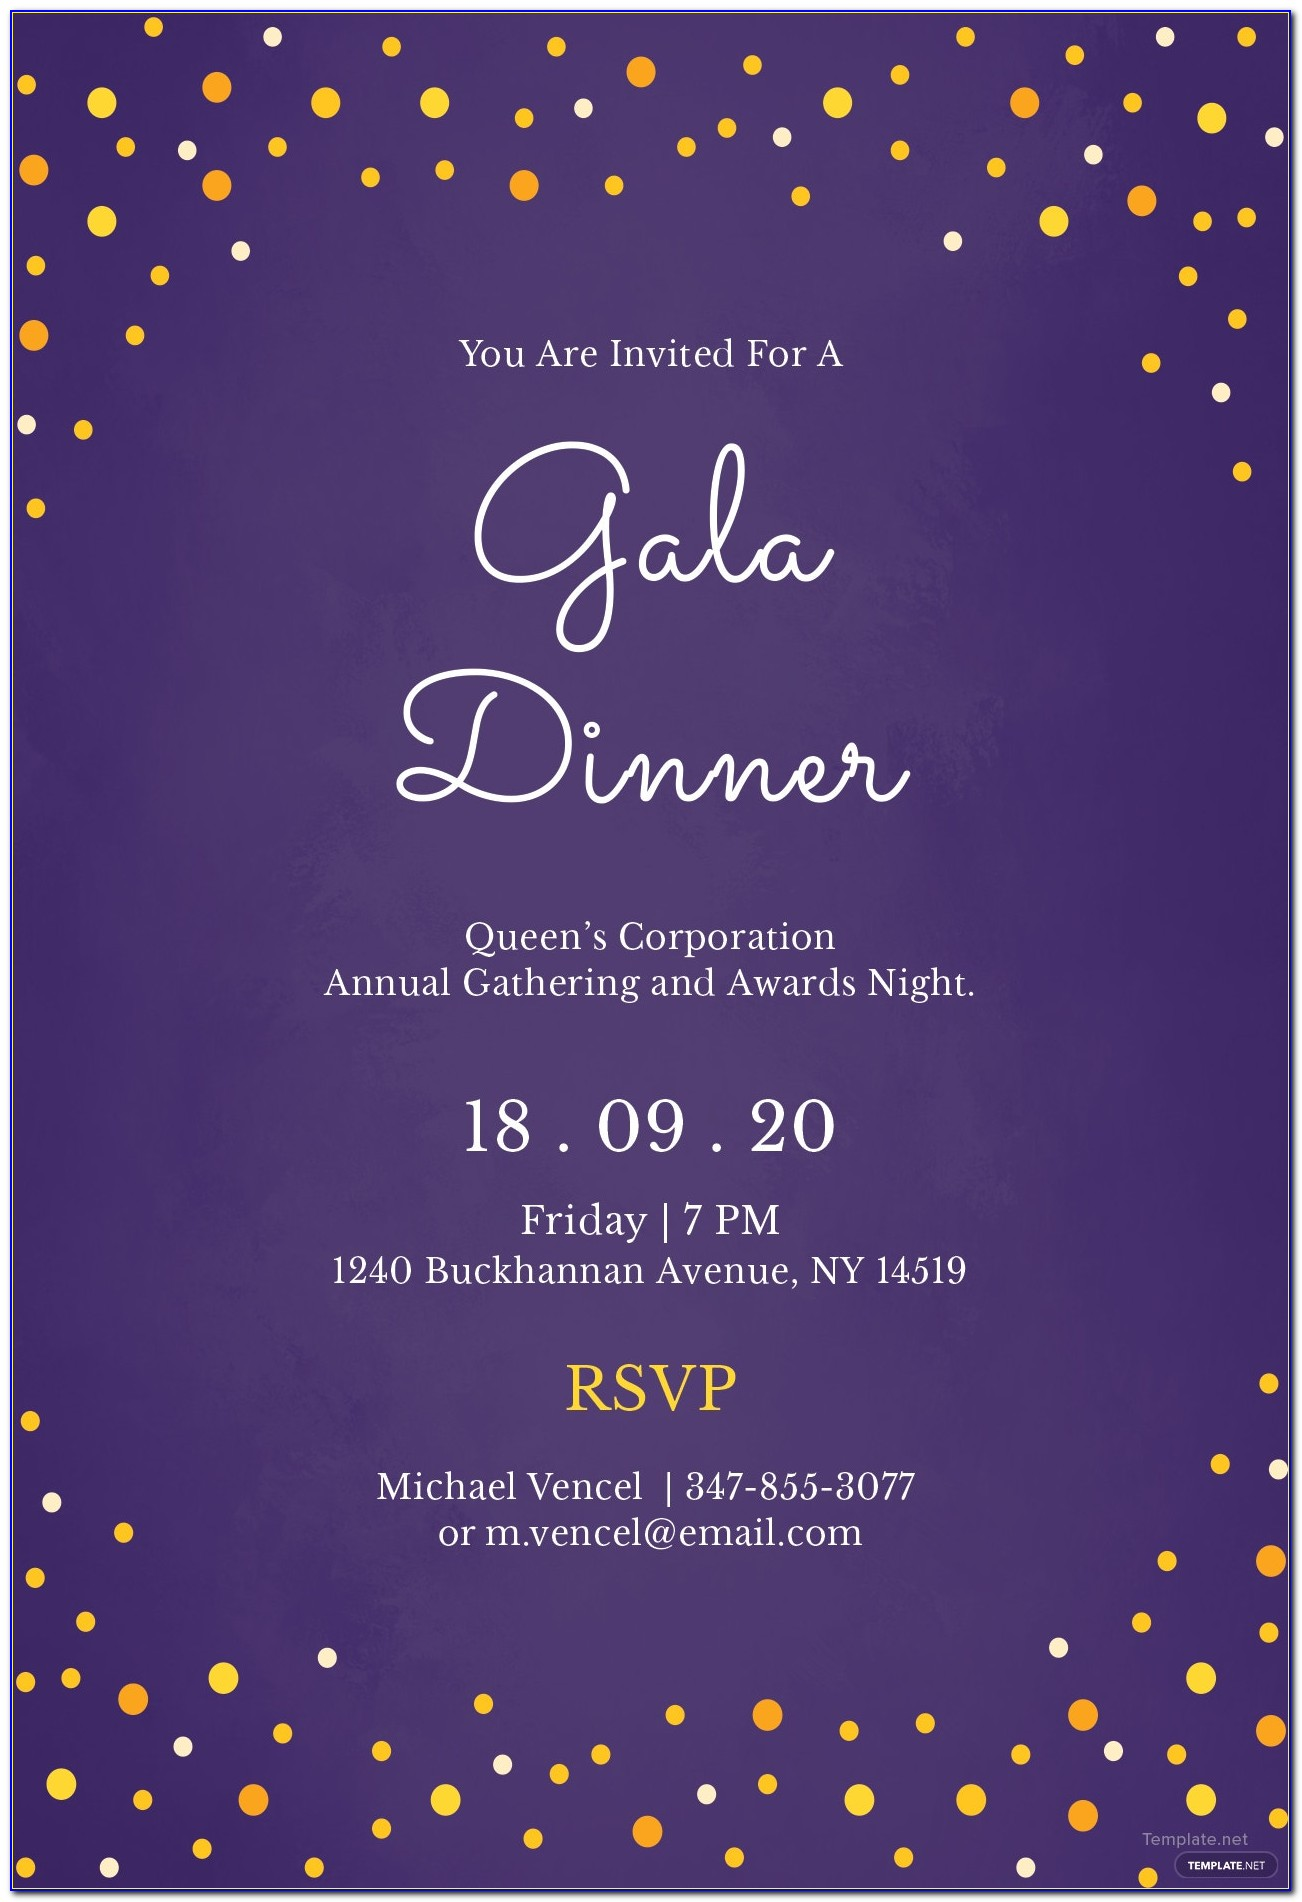 Gala Dinner Invitation Template